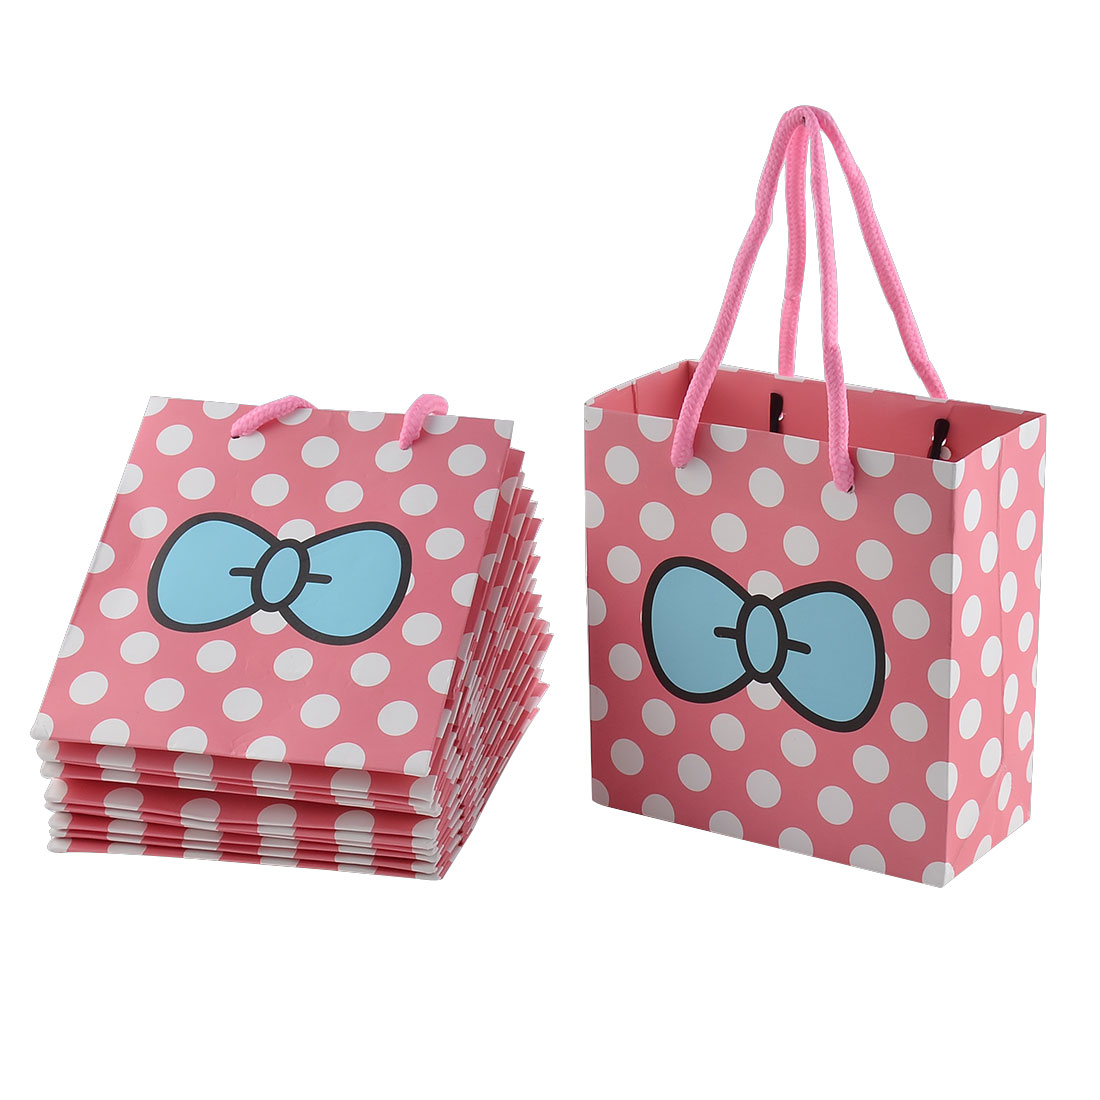 Paper White Dots Bowknot Pattern Birthday Wedding Gift Bags Holder Pink 12pcs